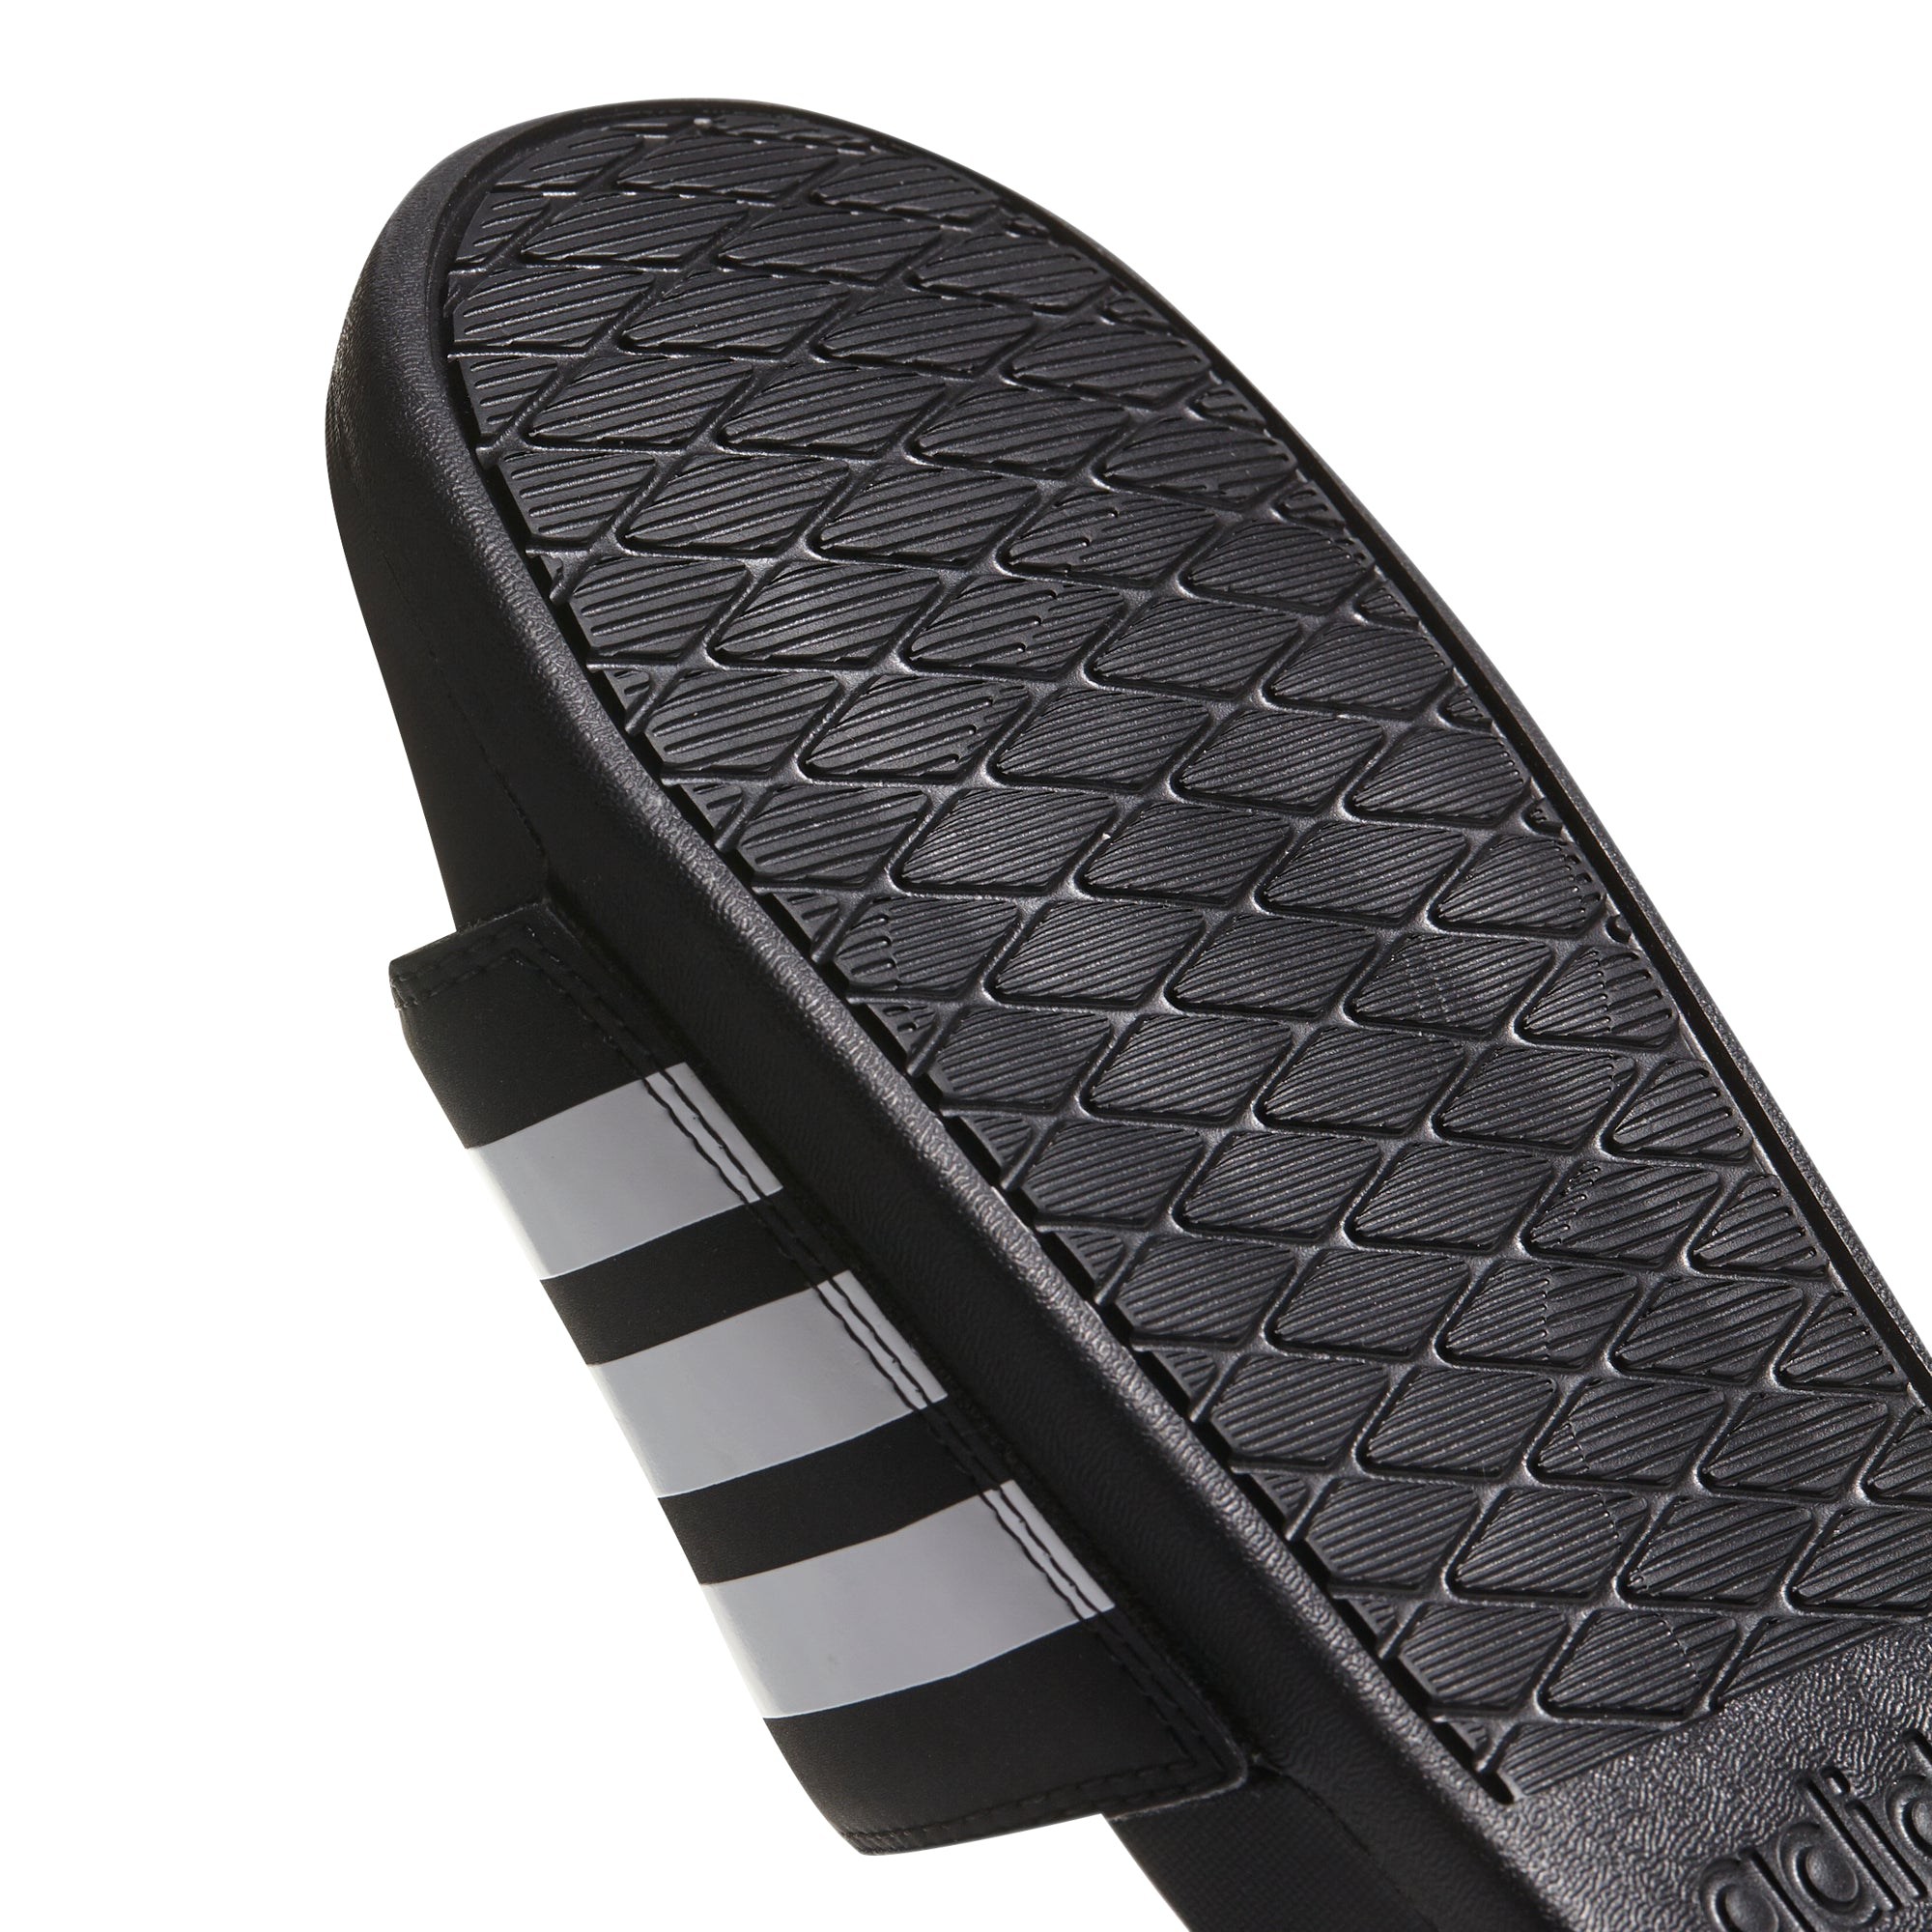 Adilette comfort cloudfoam plus slides